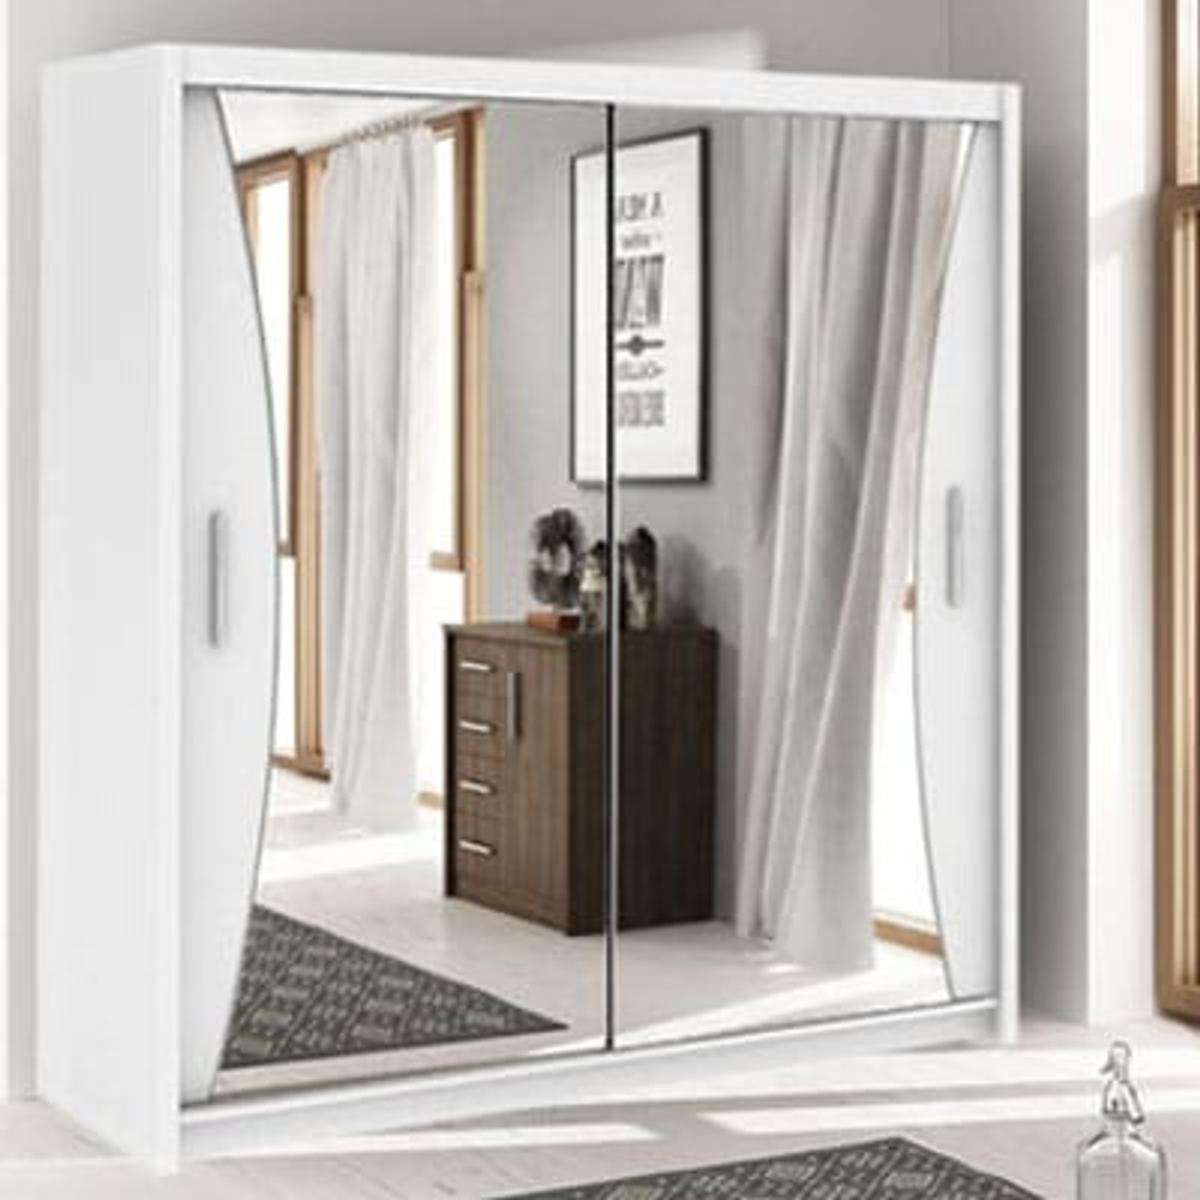 California 2 Sliding Mirror Door Wardrobe In E1 0ae London For 249 00 For Sale Shpock